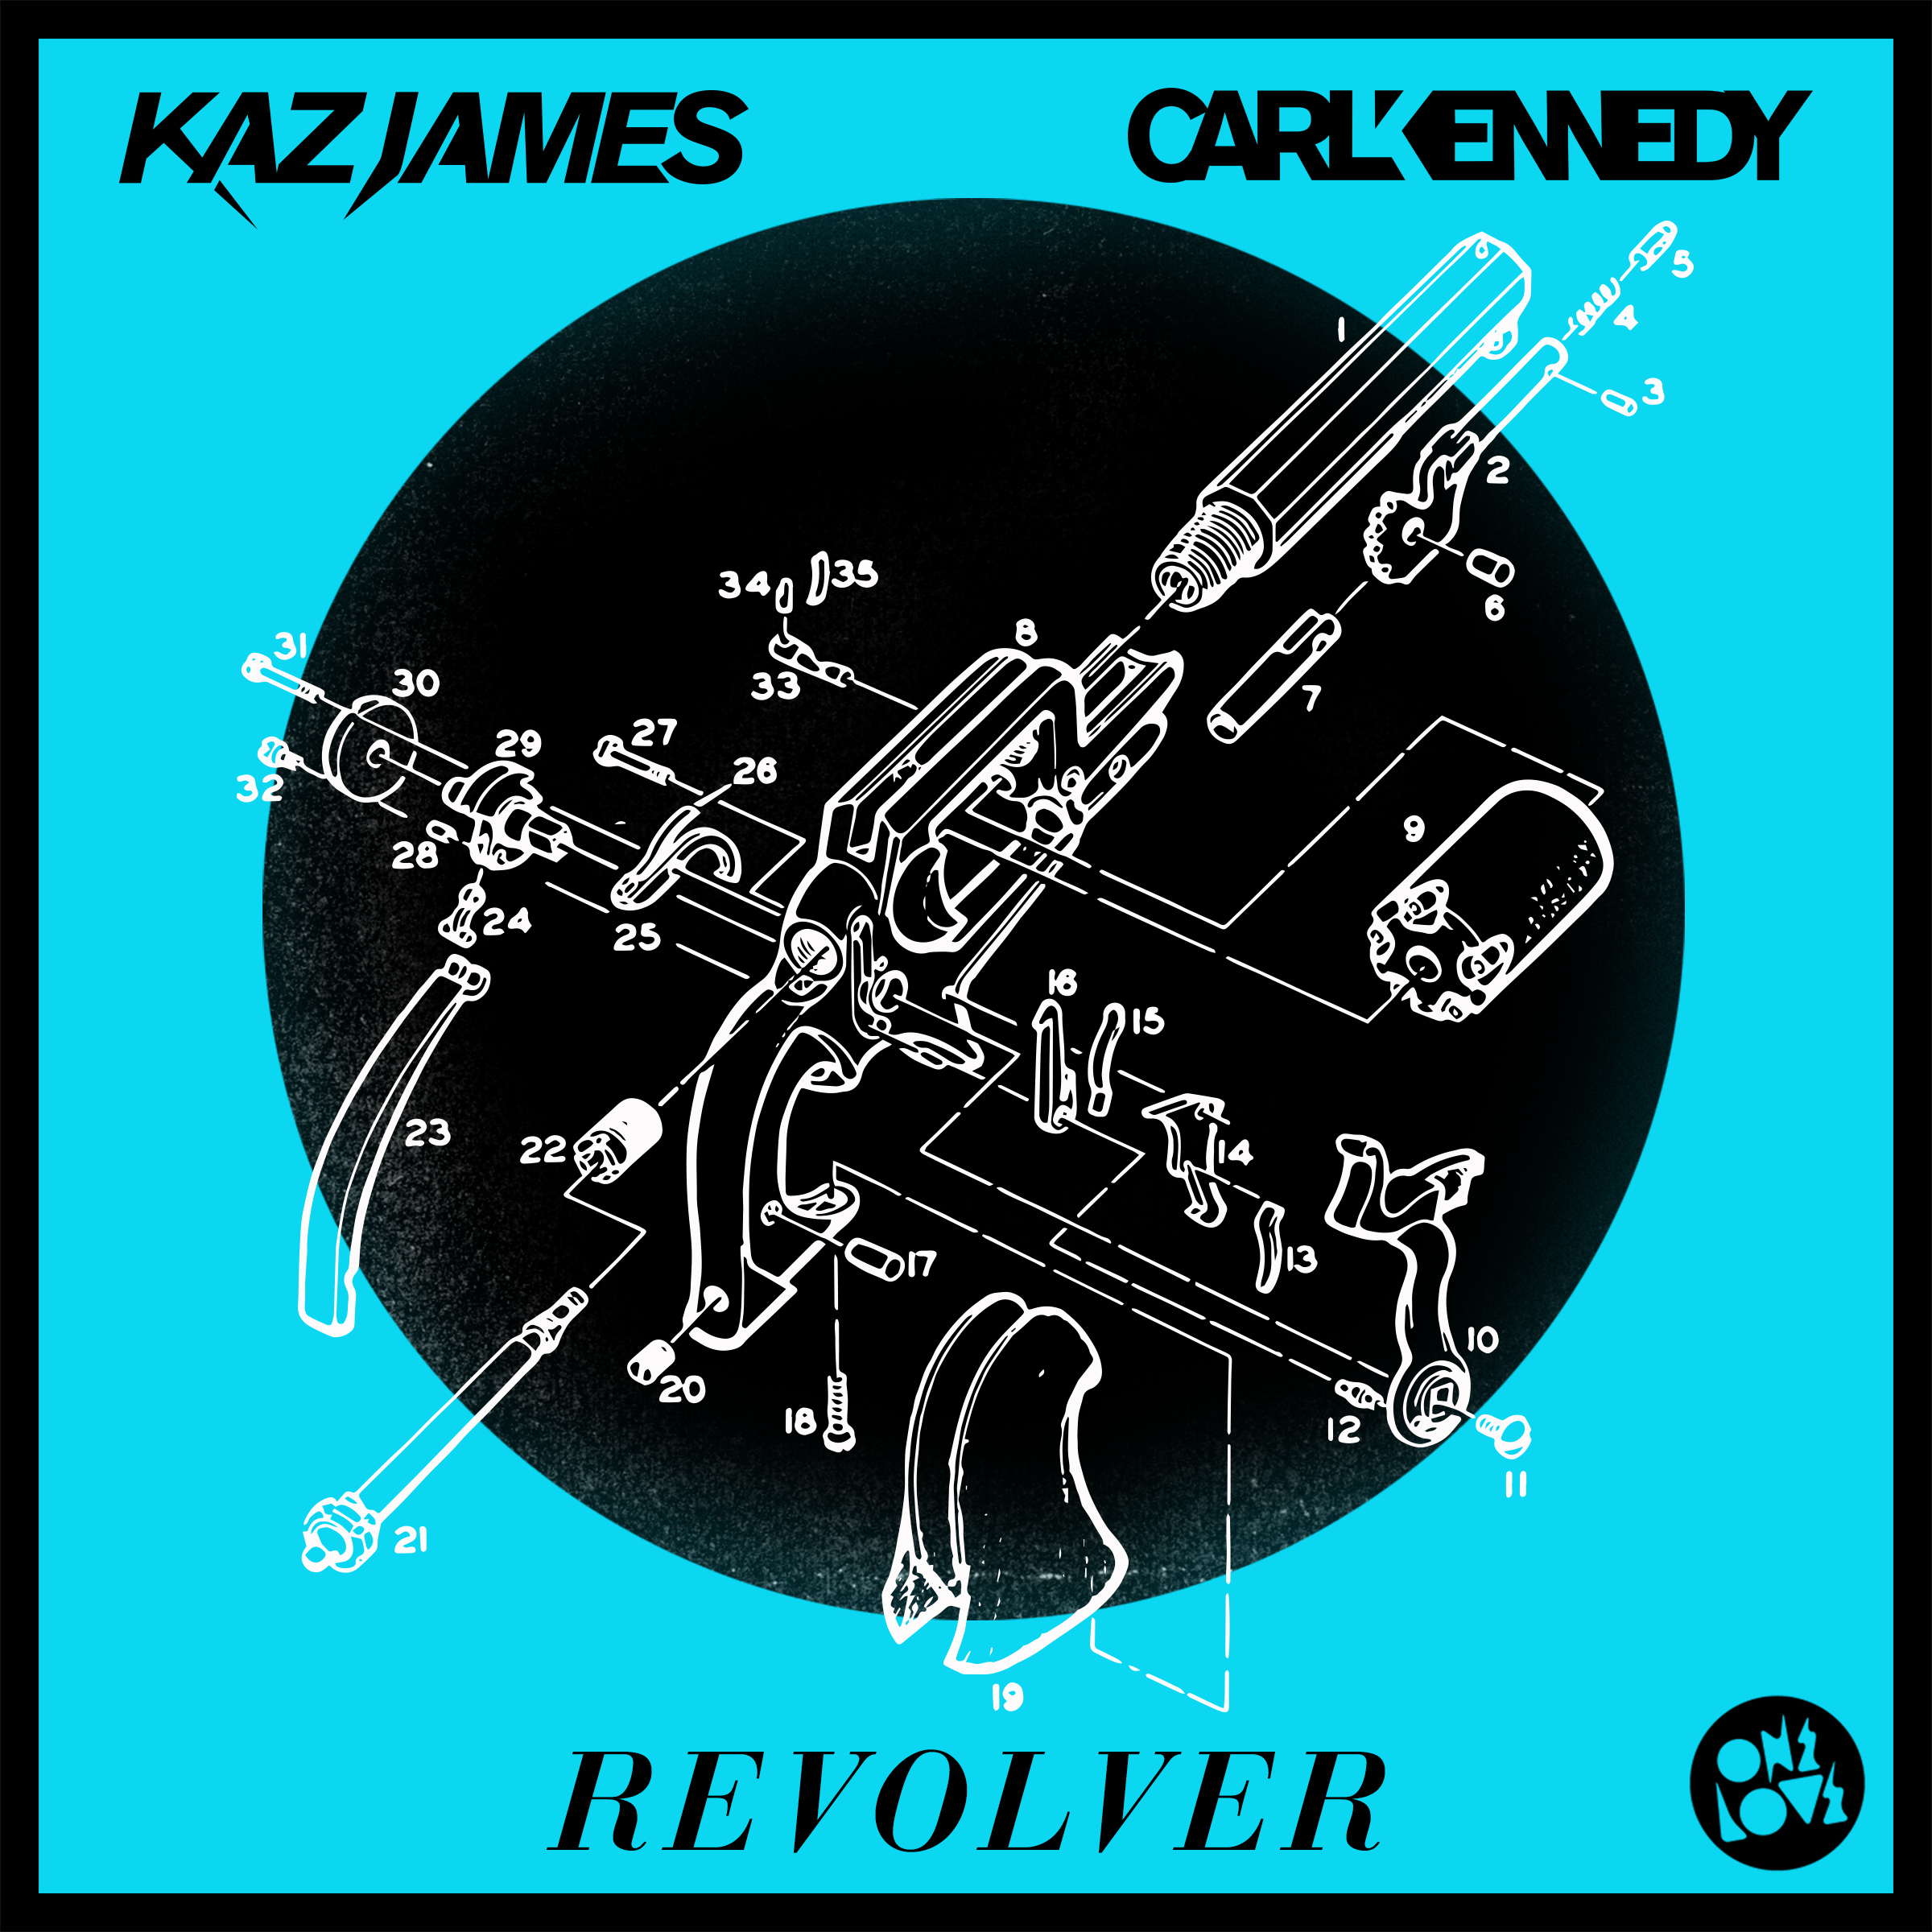 kaz-james-carl-kennedy-revolver